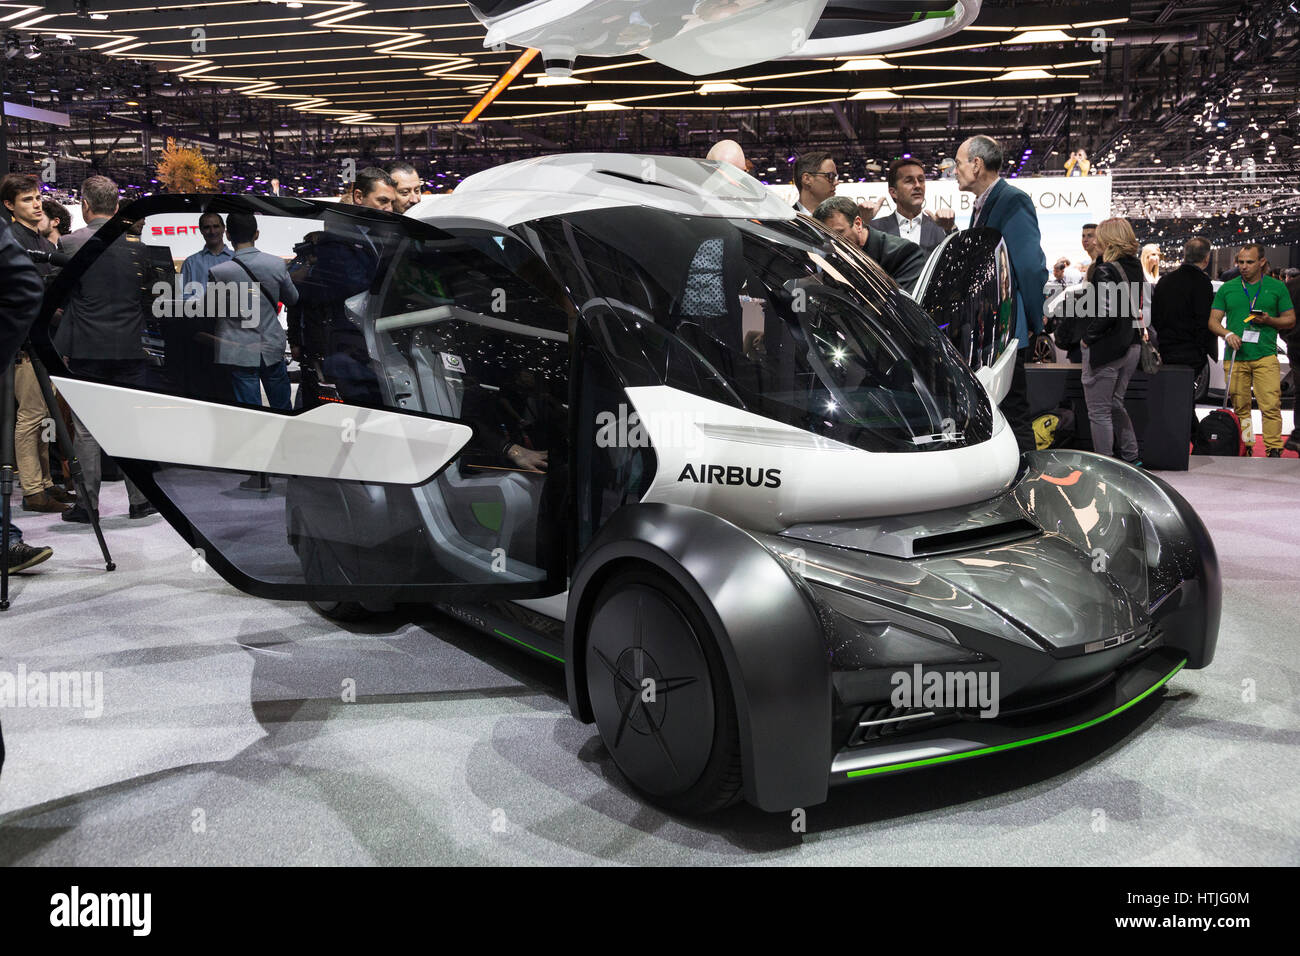 flying car concept stock photos flying car concept stock images alamy. Black Bedroom Furniture Sets. Home Design Ideas